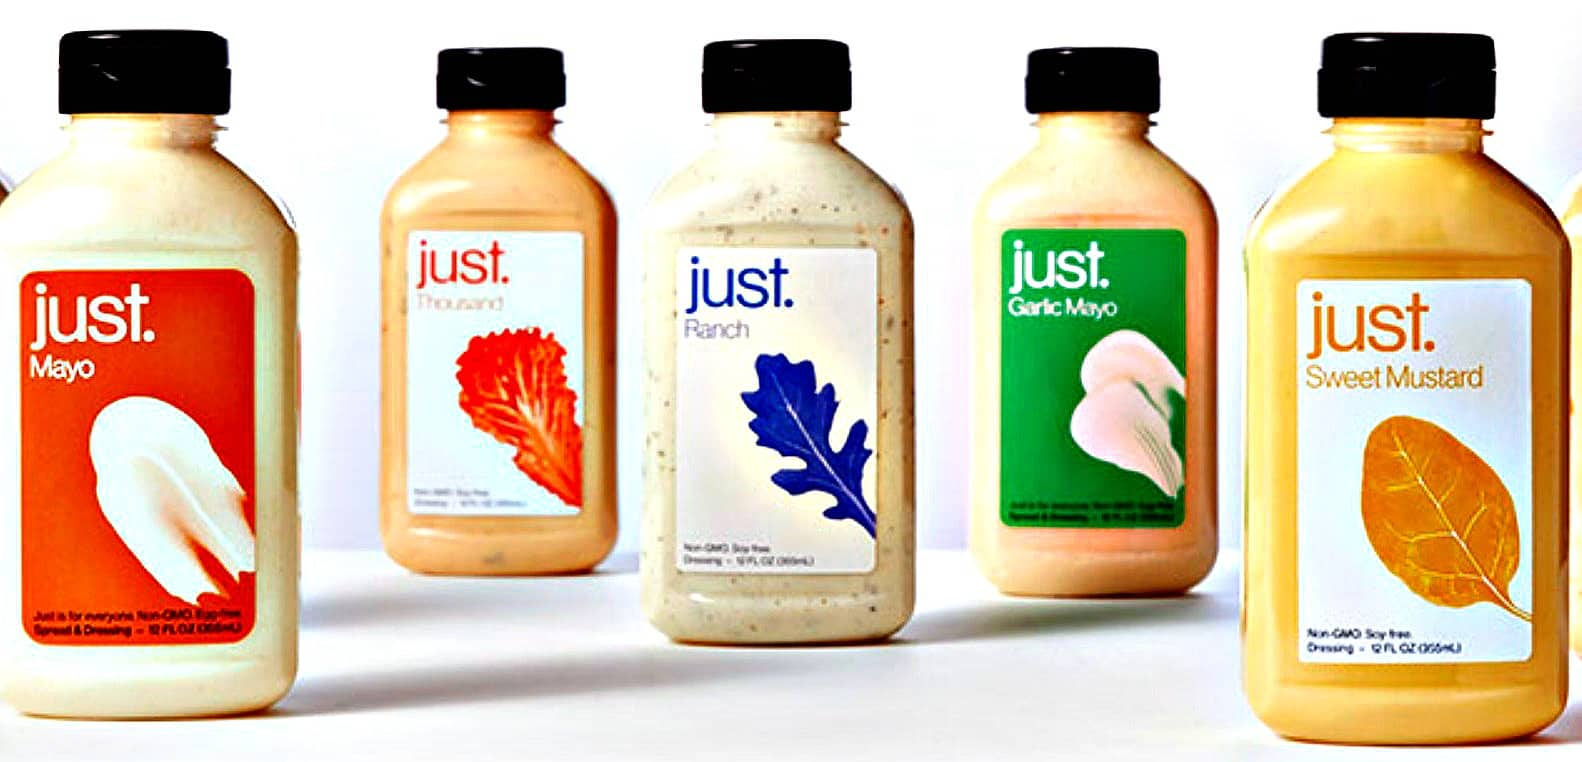 Josh Tetrick's JUST product line of vegan mayo & dressings - Swoon Talent